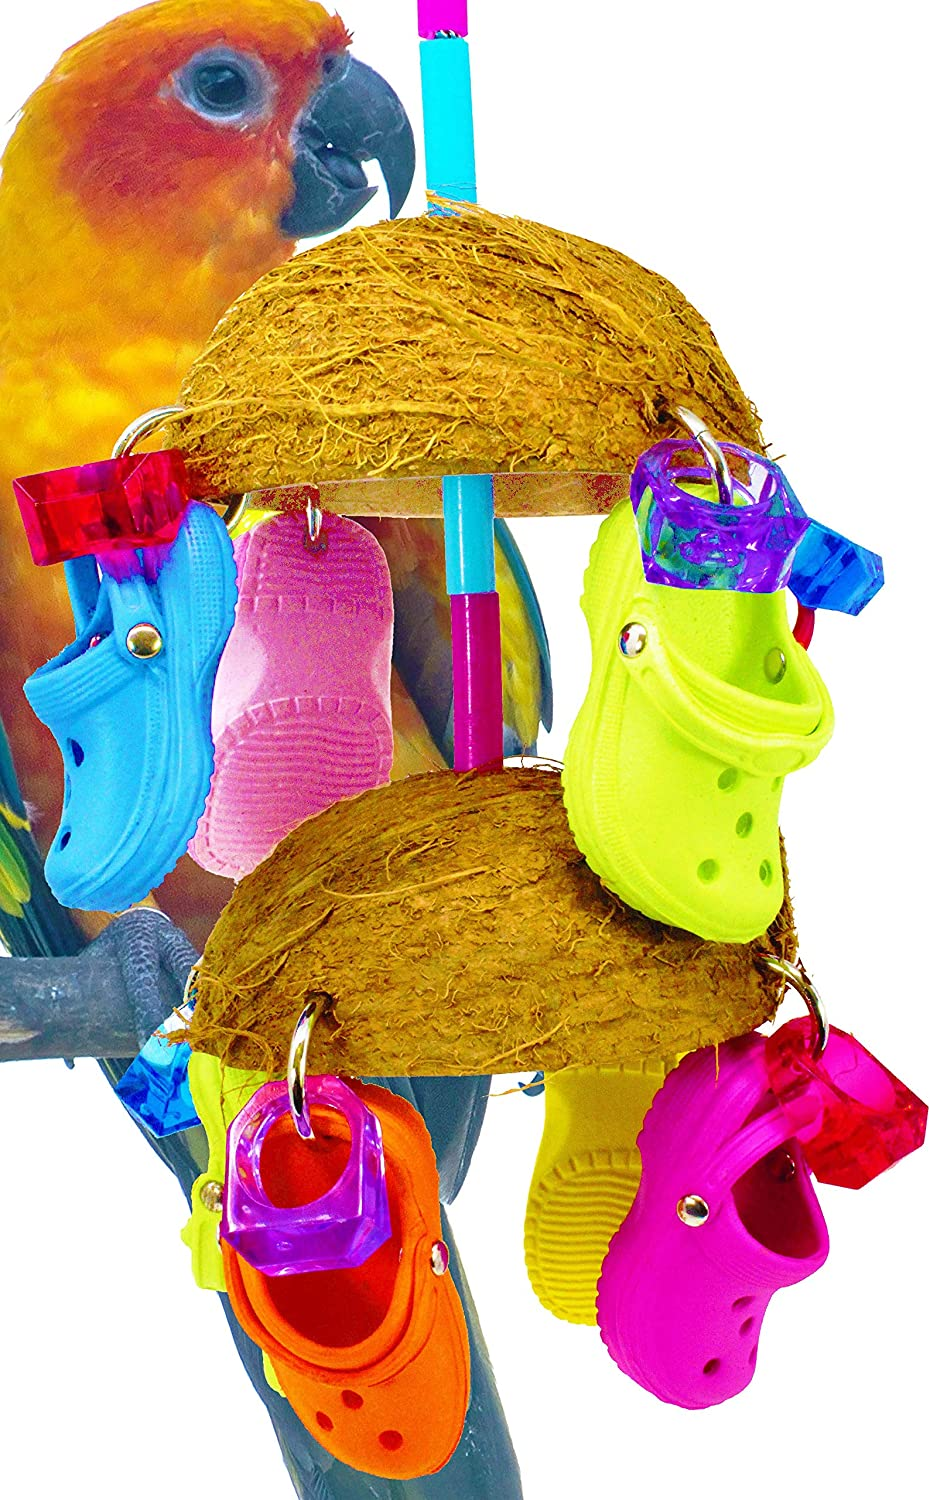 Bonka Bird Toys 806 Duo Coco Sandal Parred Bird cage African Grey Cockatoo Amazon Conure Quality Spoon Products Sandals Aviary Coconut Husk Pacifier Rope Perch Beak Domes